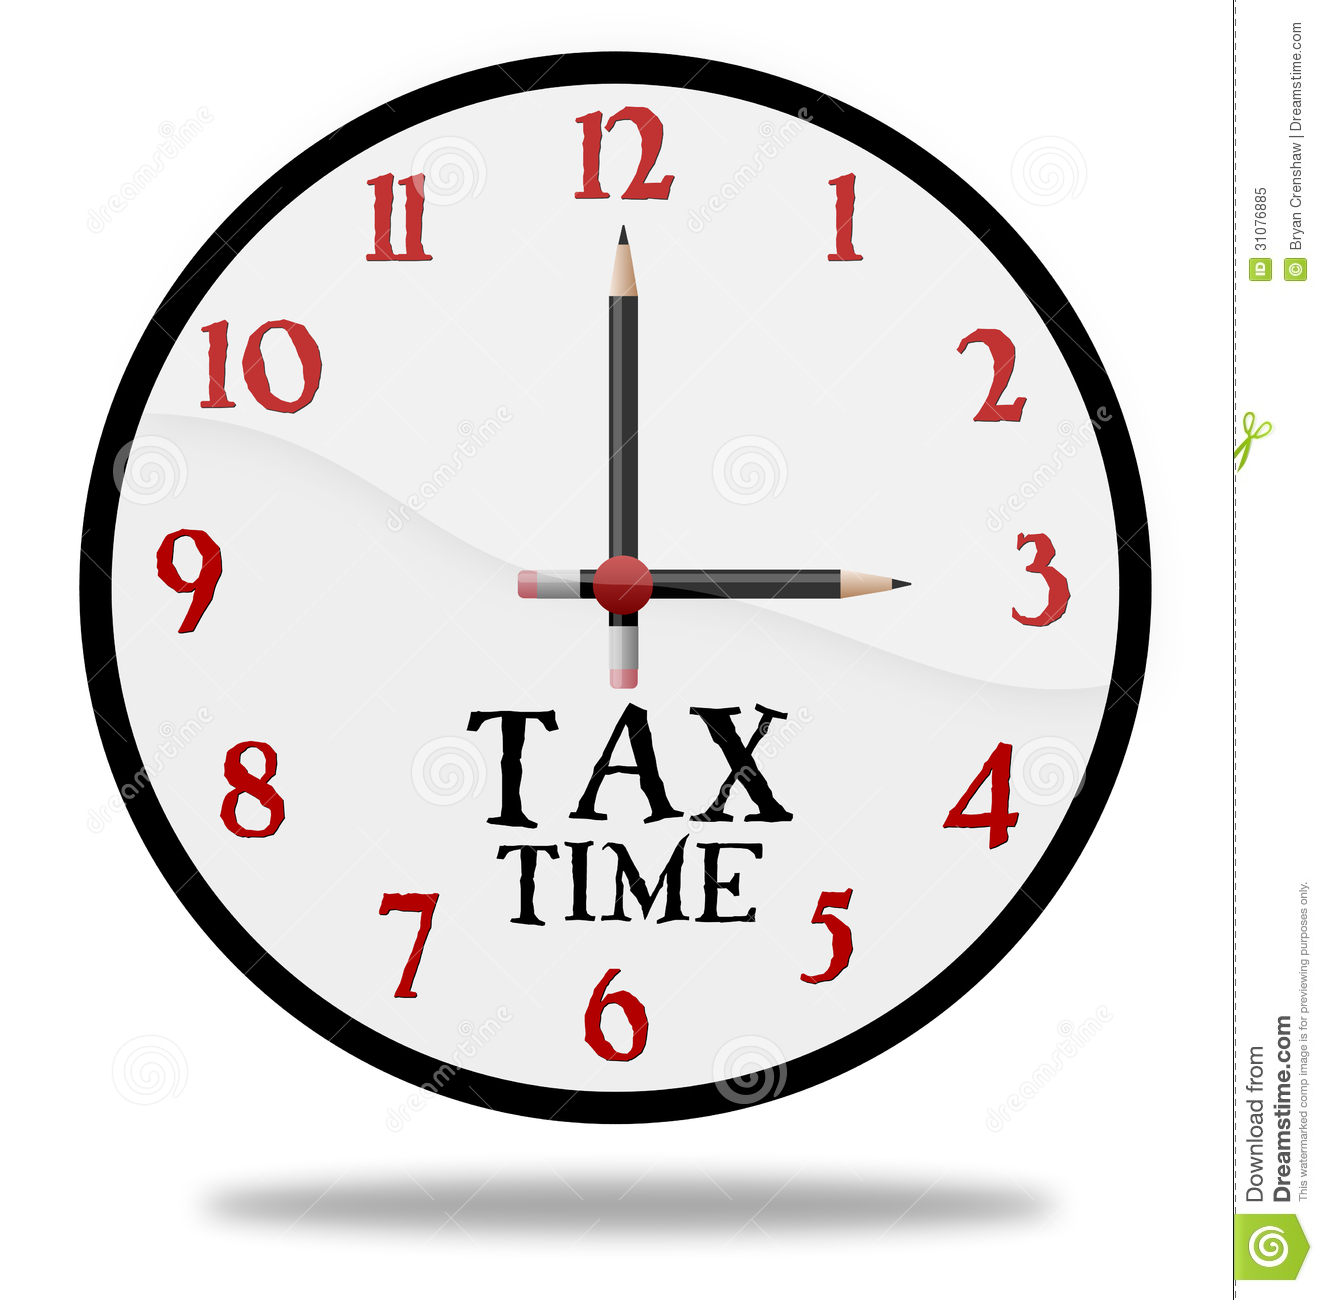 Tax Time Clock Stock Image Image Of Minutes Illustrated